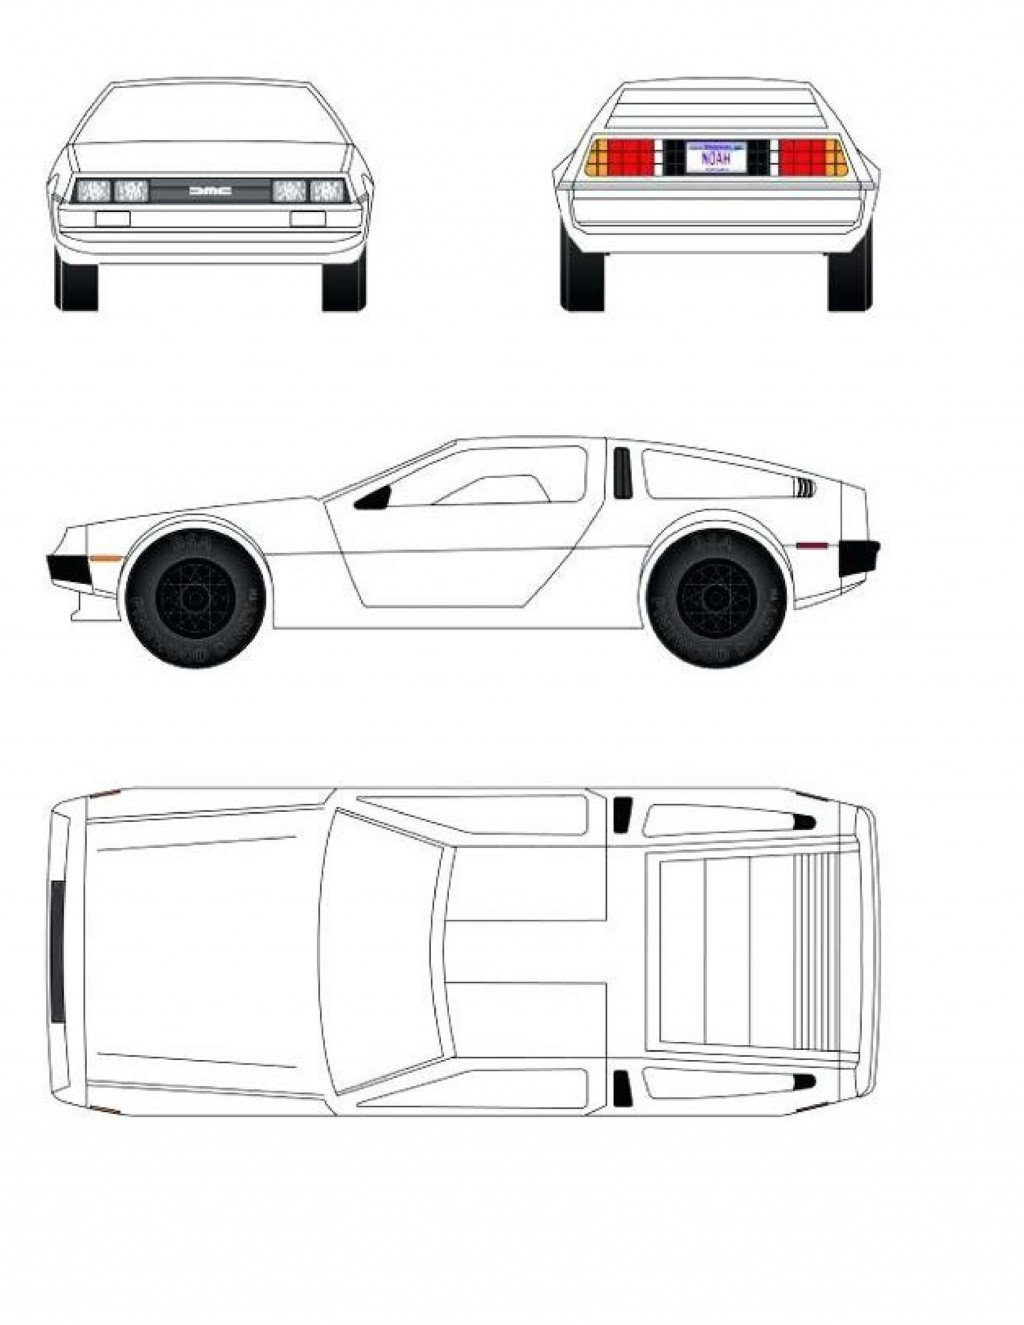 009 Staggering Fastest Pinewood Derby Car Template Design  Templates WorldLarge